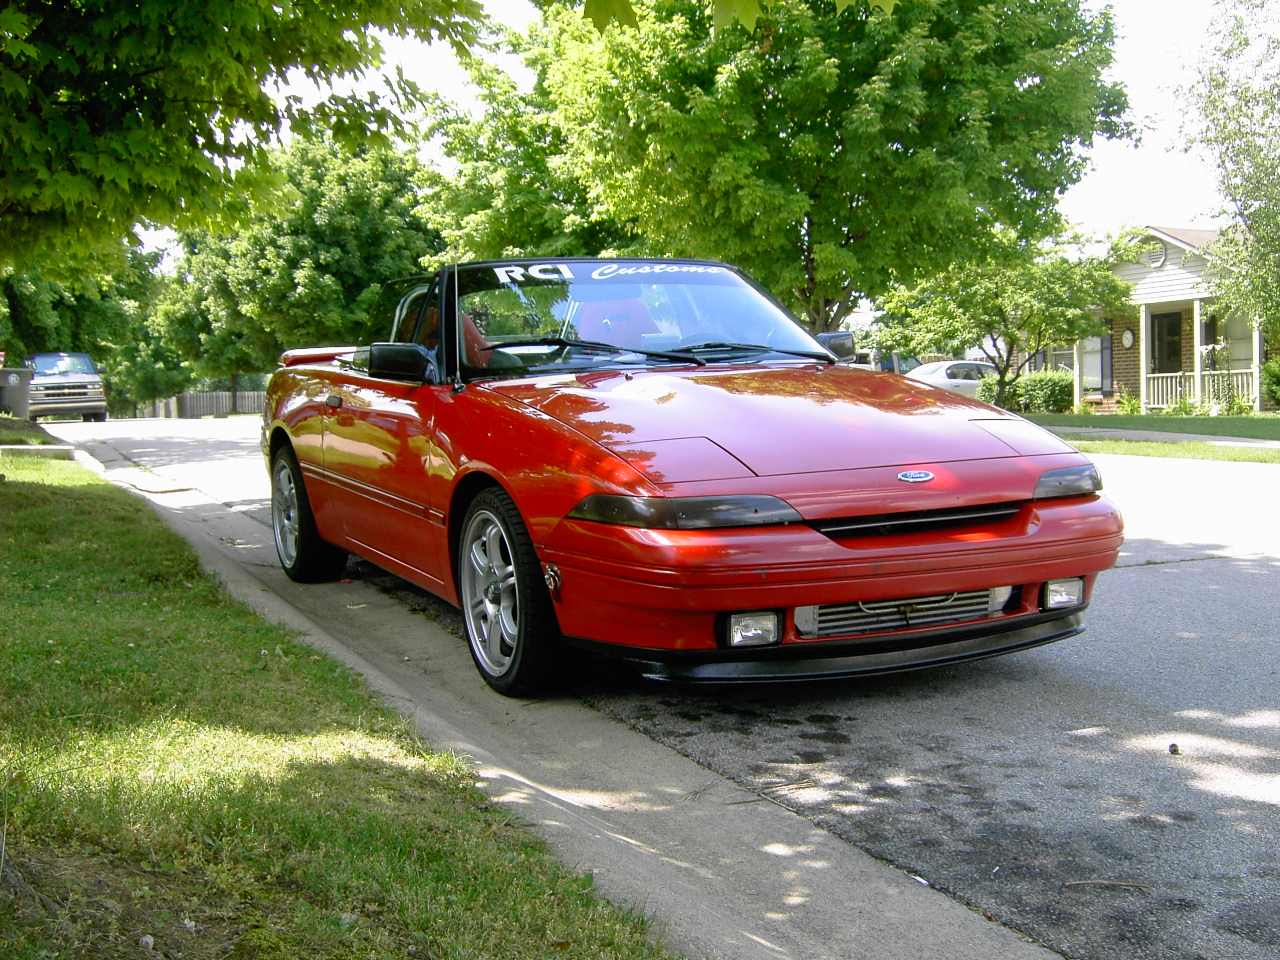 Picture of 1991 Mercury Capri 2 Dr XR2 Turbo Convertible, exterior